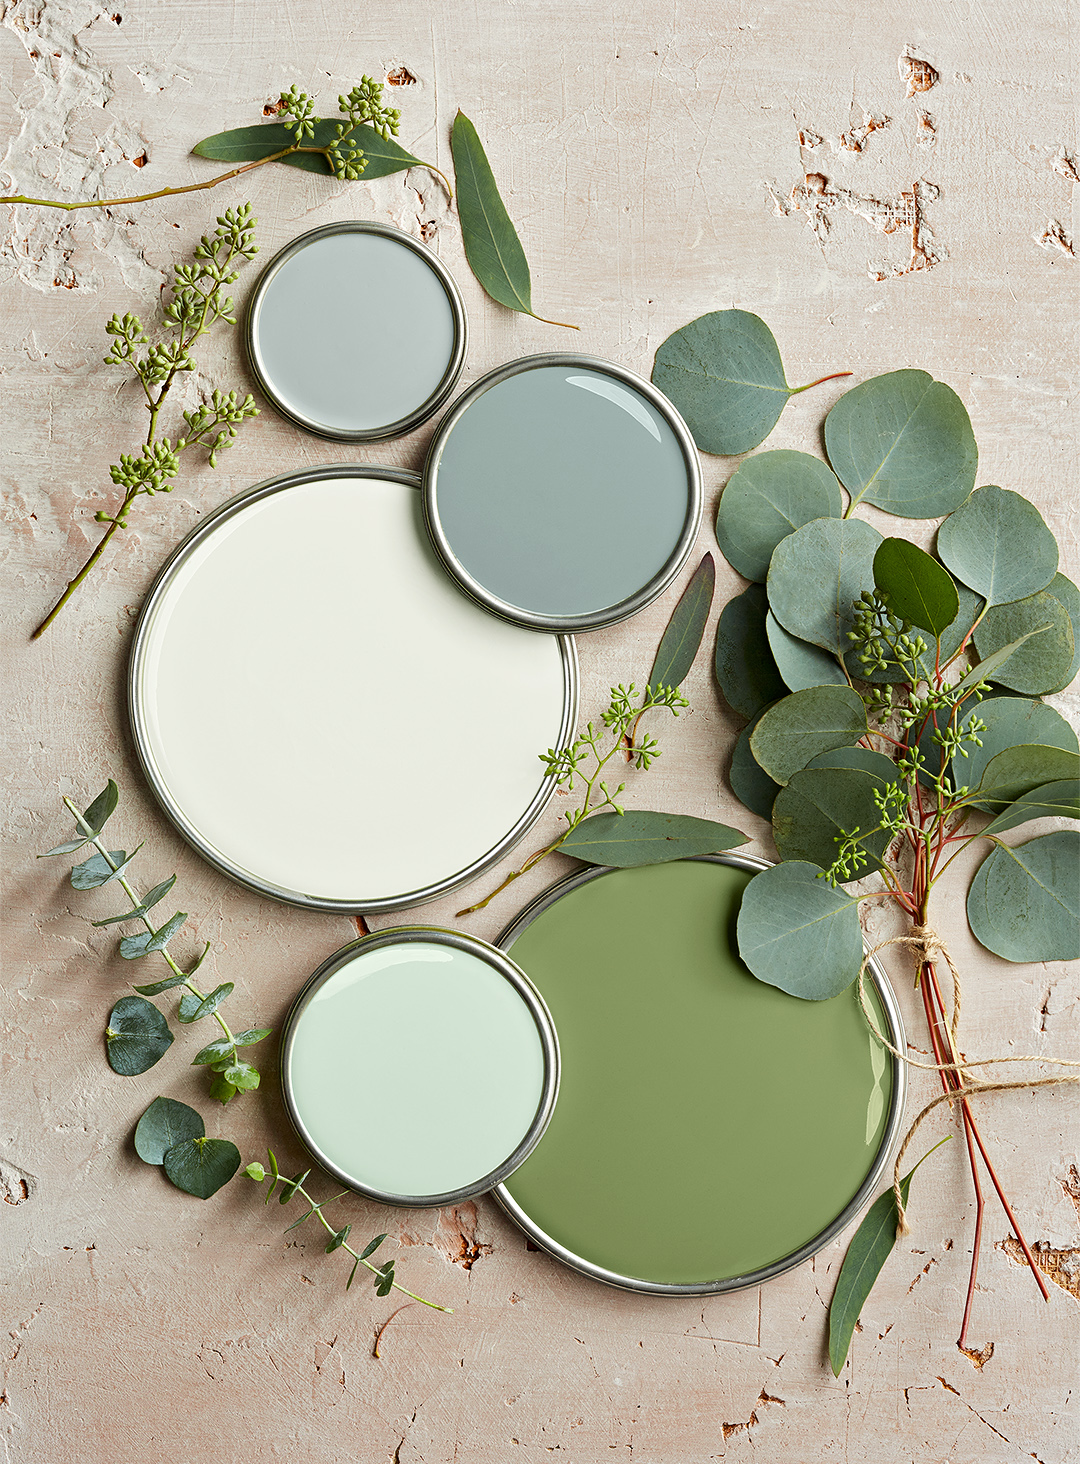 neutral green paint lids with leaves and branches